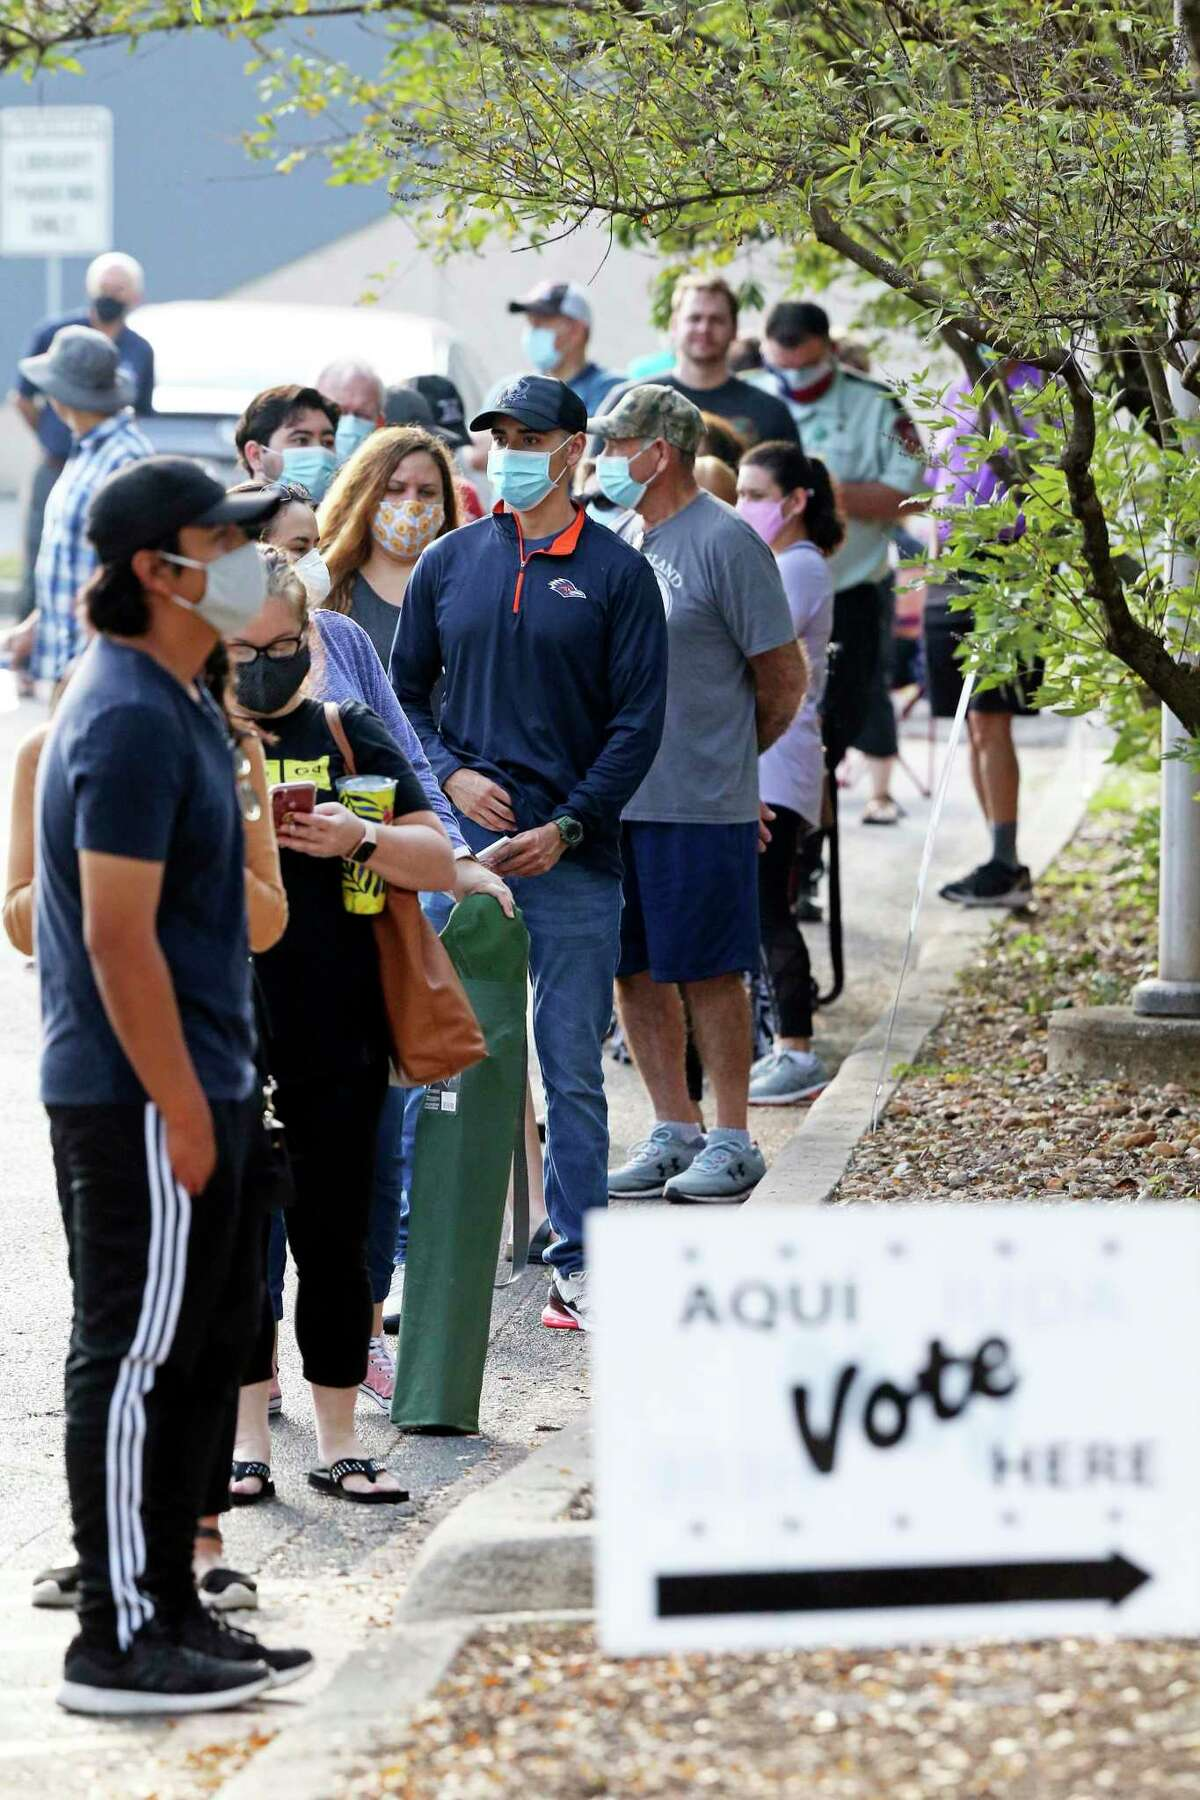 Voters wait in a long line at Brookhollow Library in October. After a secure election that saw record turnout, Republicans across the nation, including in Texas, are pushing efforts to limit ballot access.